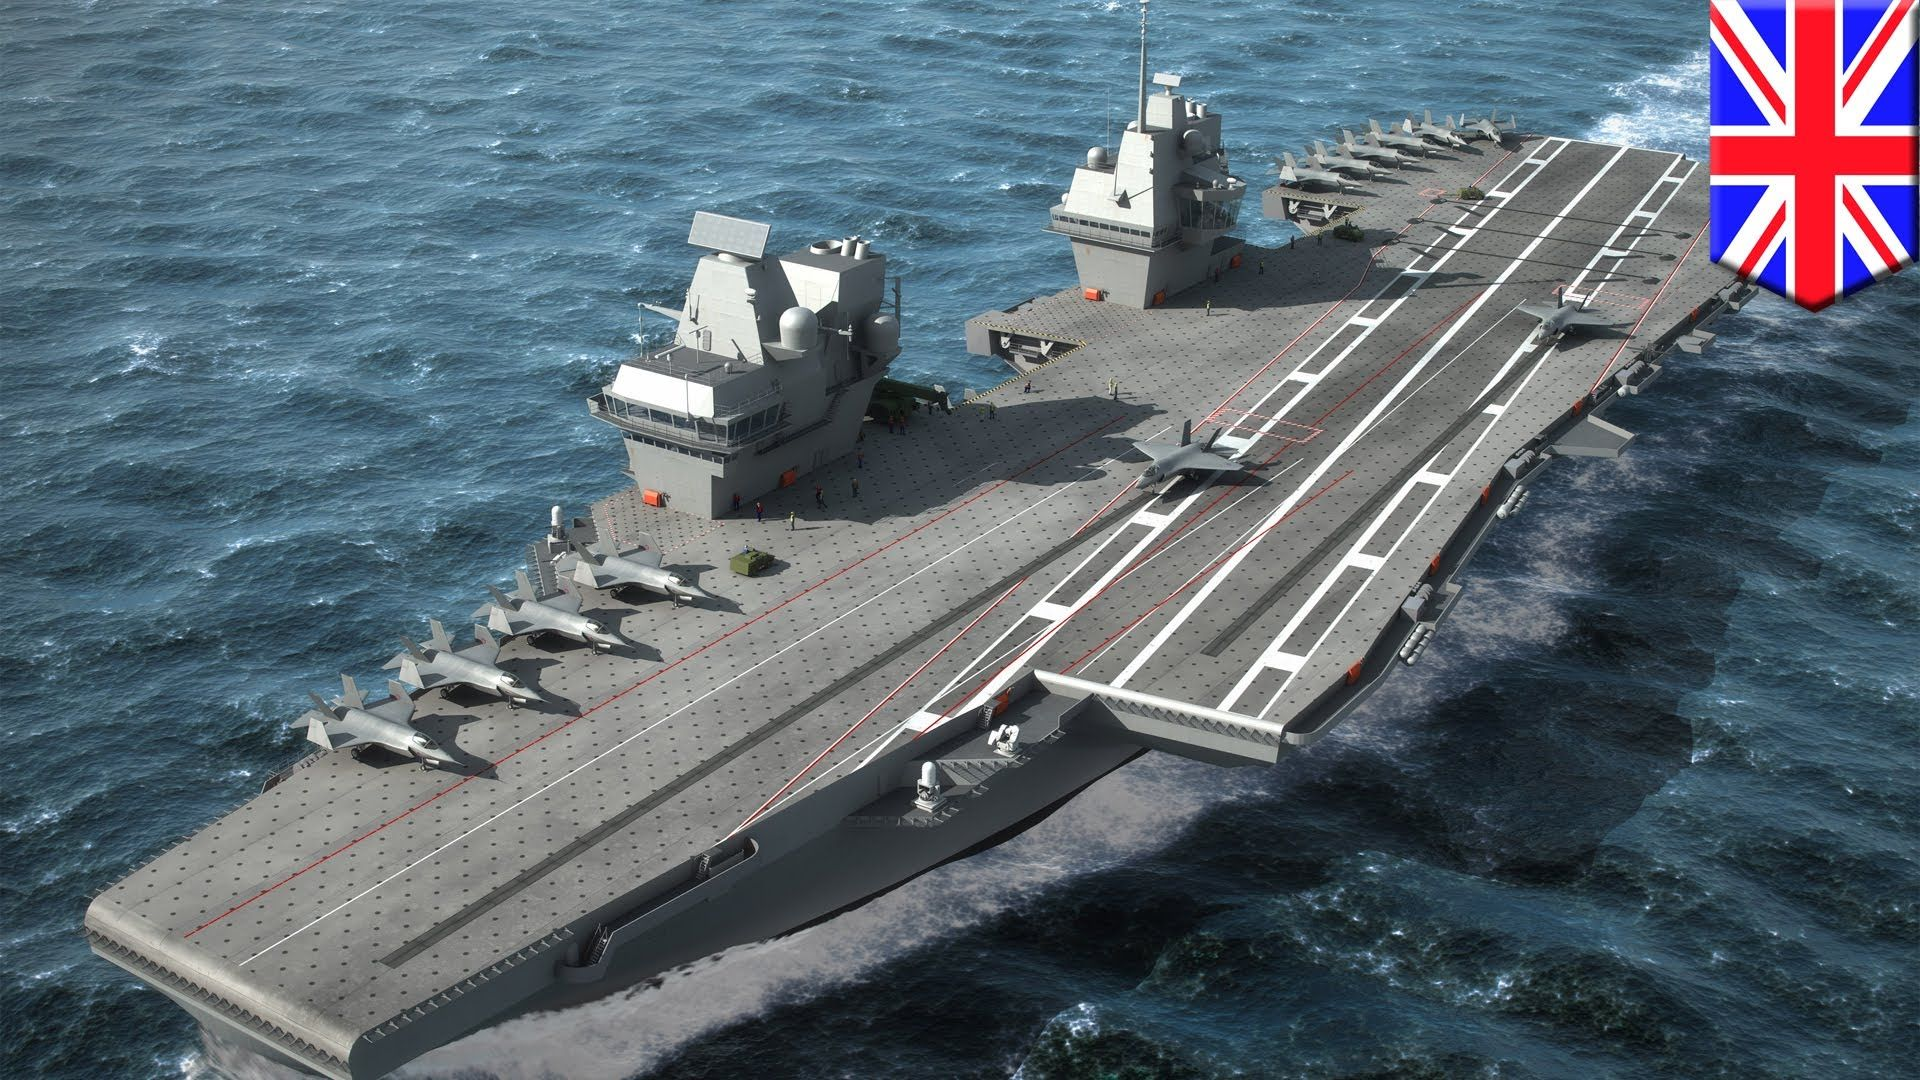 New British Aircraft Carrier Hms Queen Elizabeth To Be The World S Second Largest Carrier Youtu Aircraft Carrier Hms Queen Elizabeth British Aircraft Carrier